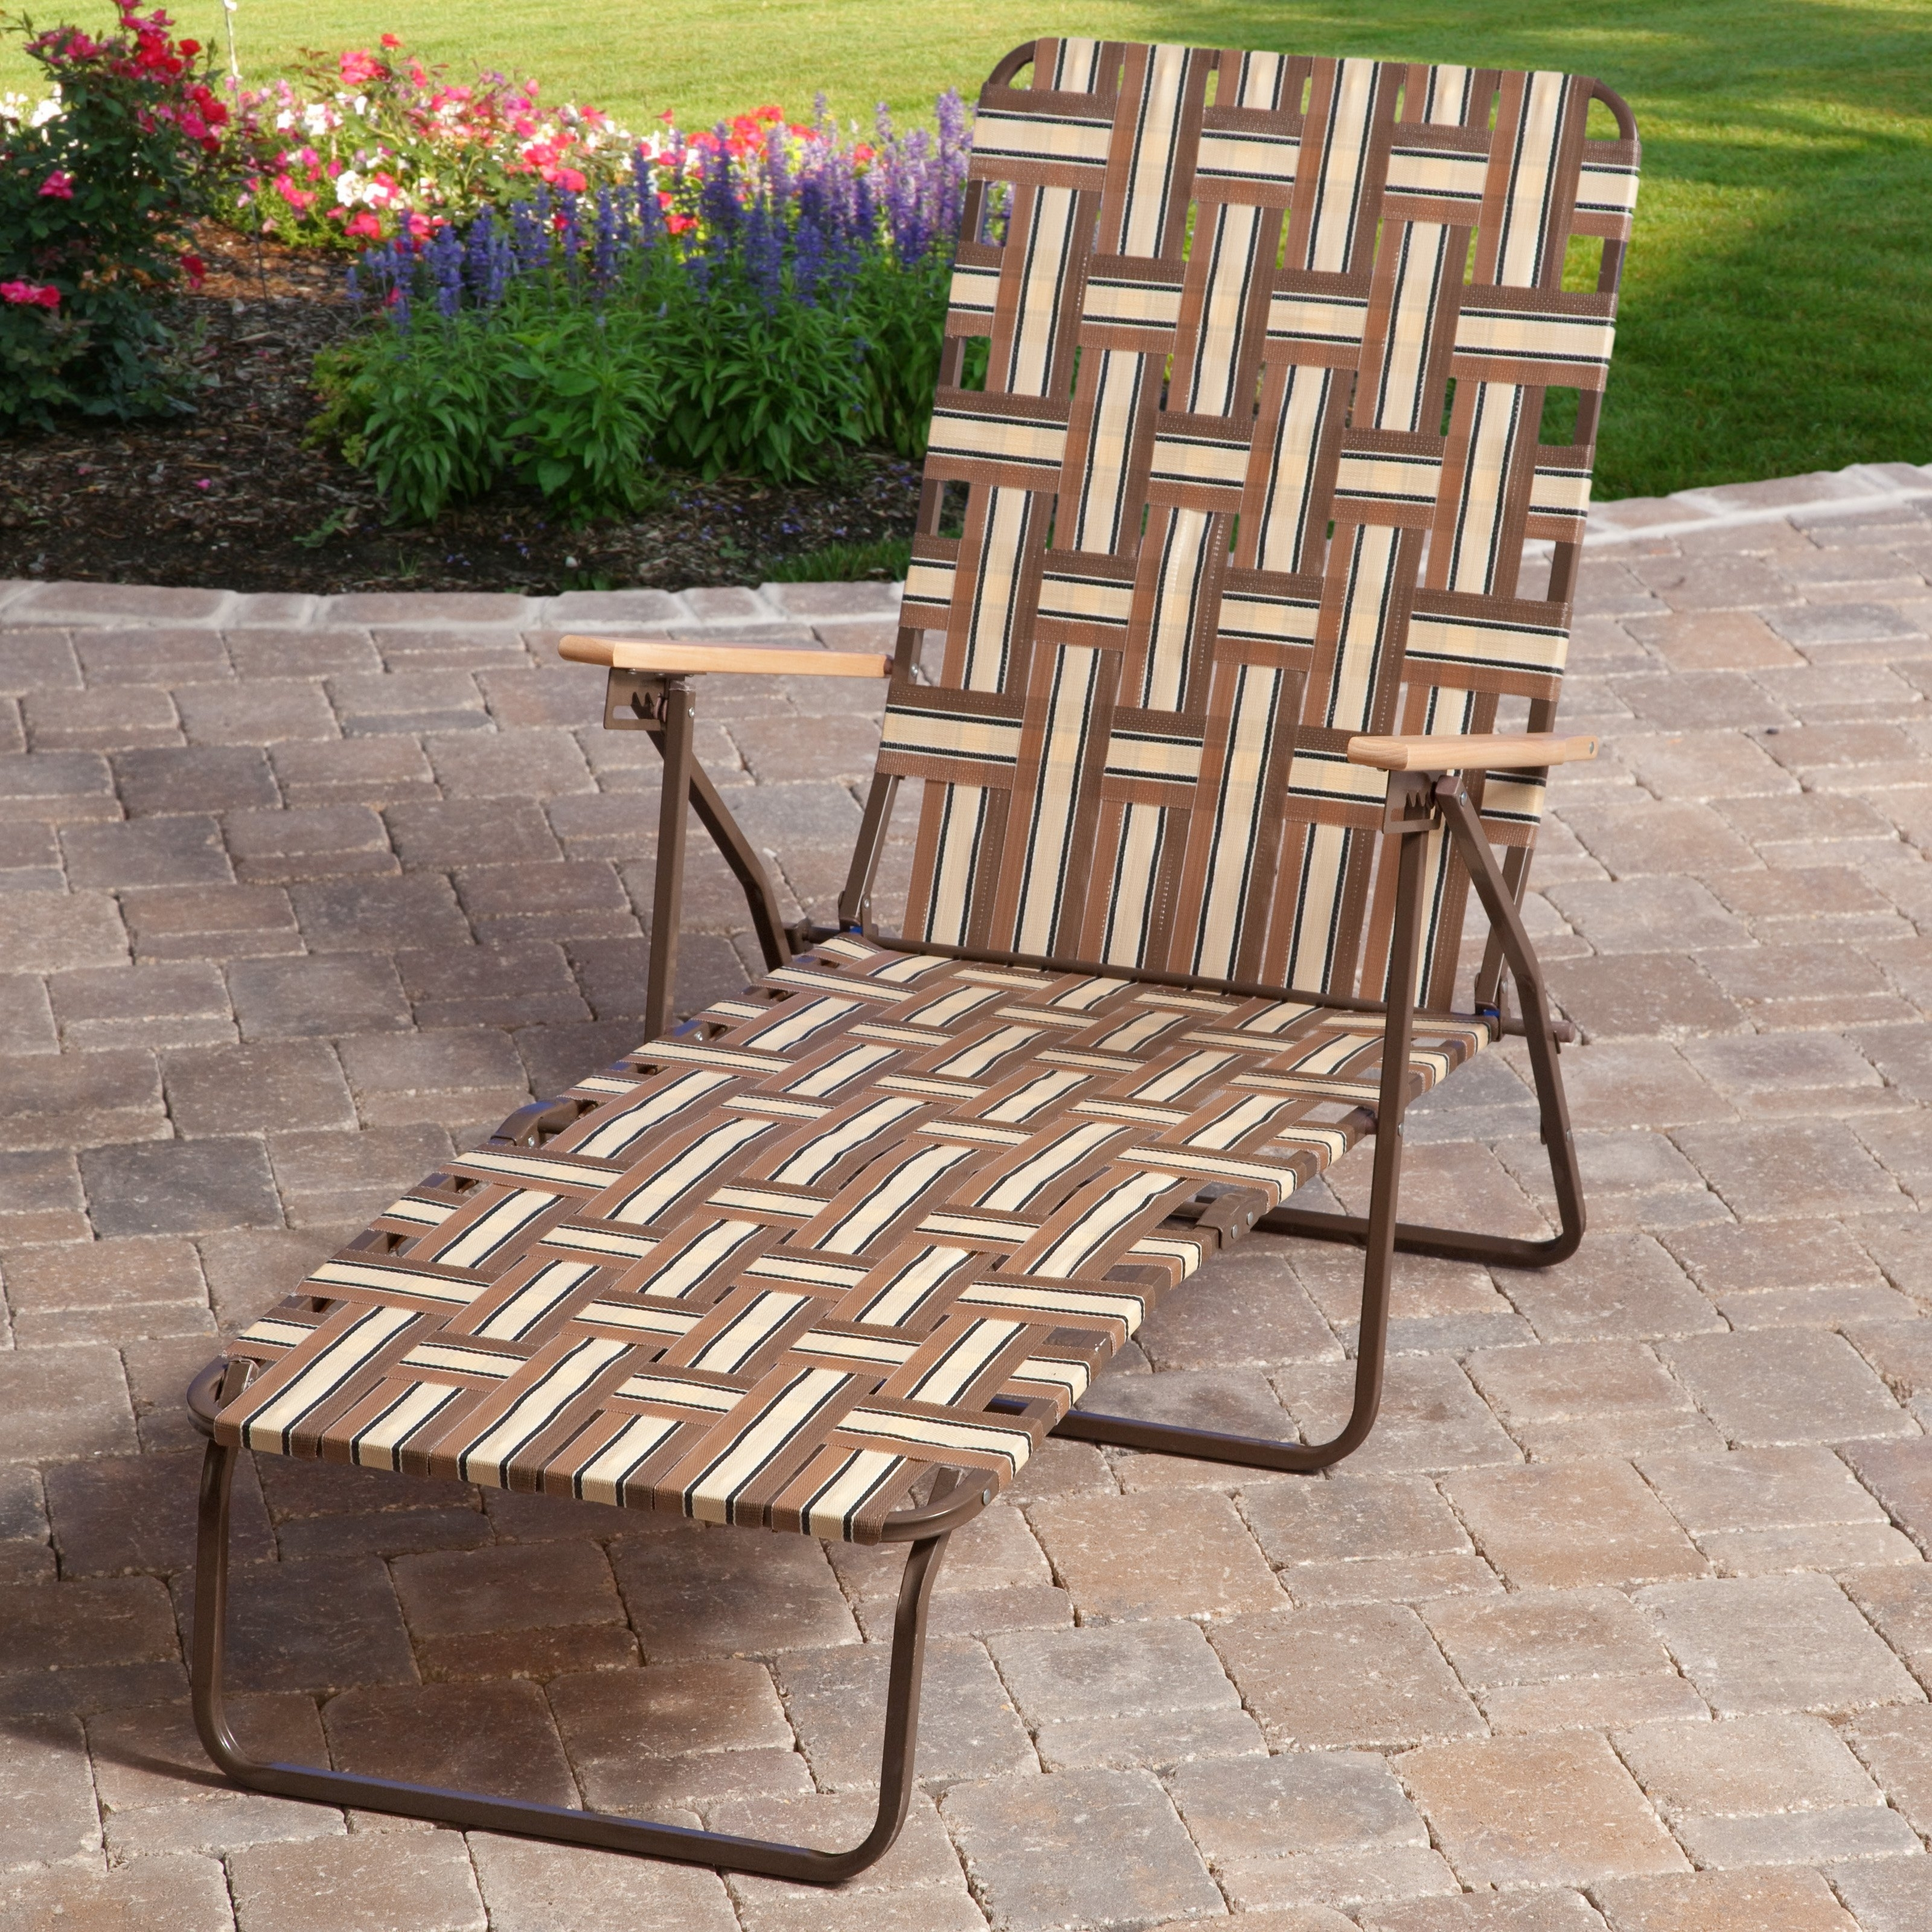 Well Liked Rio Deluxe Folding Web Chaise Lounge – Walmart Intended For Chaise Lounge Chairs At Walmart (View 14 of 15)